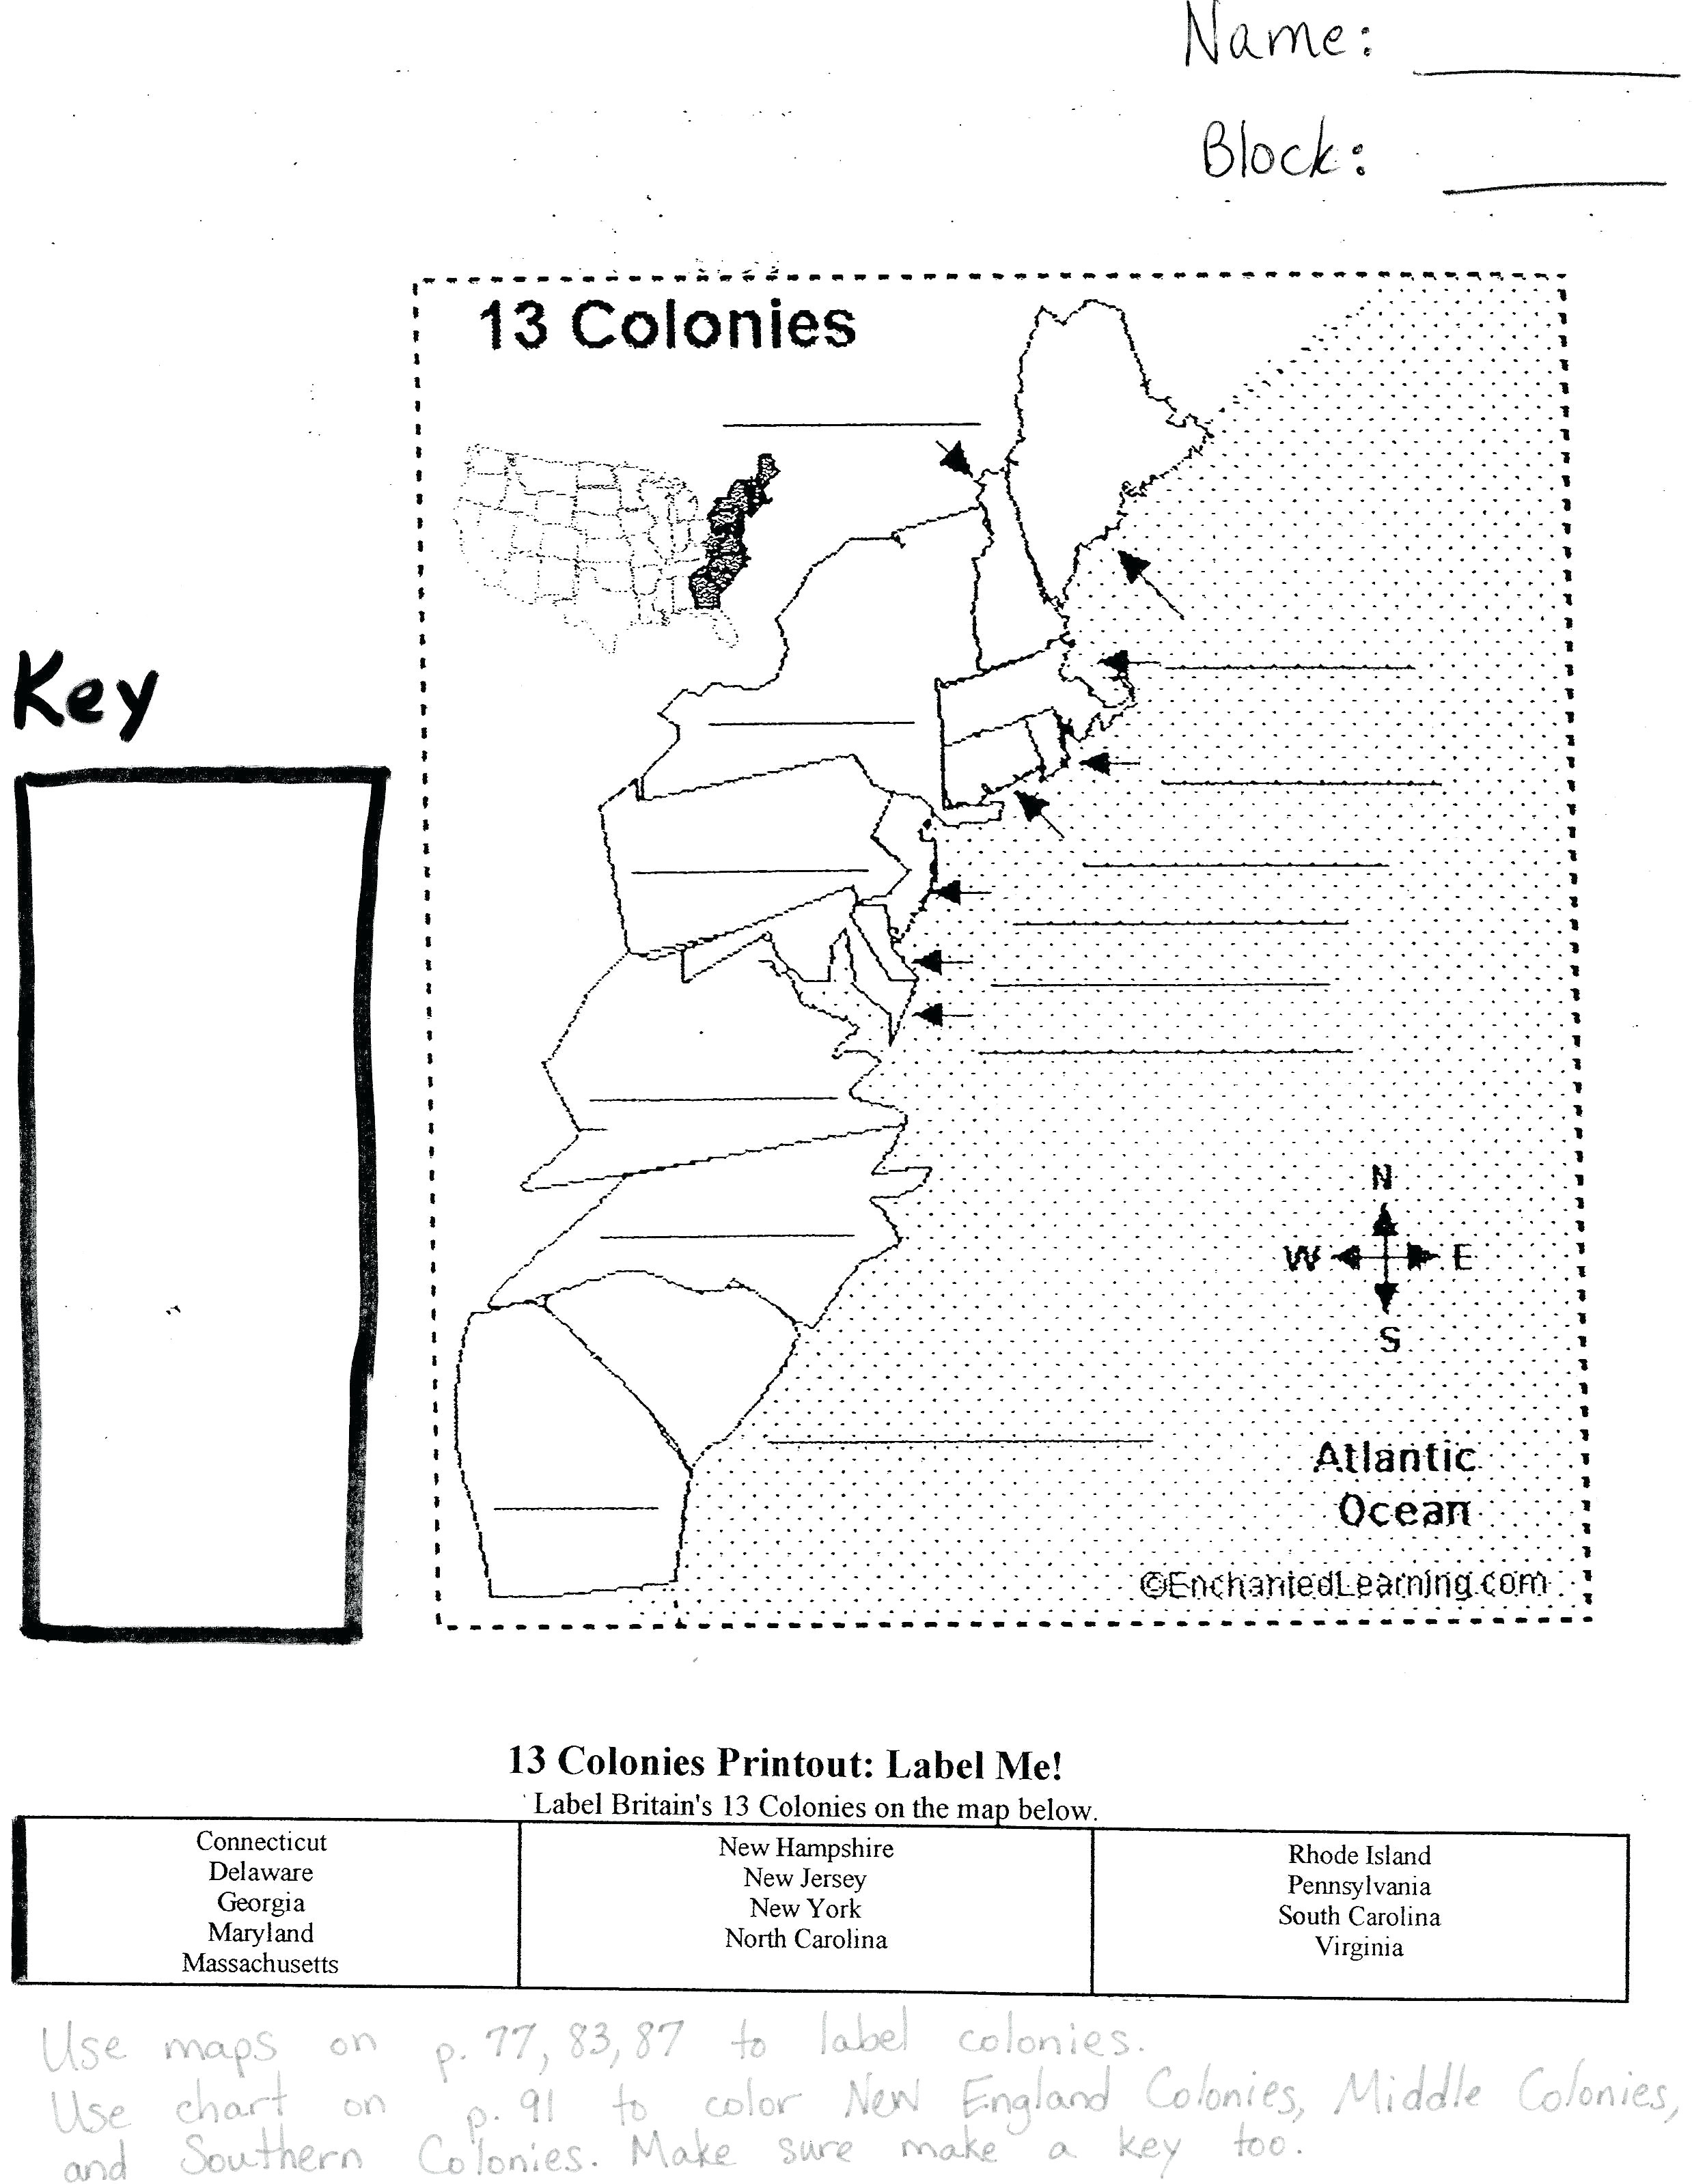 Free Printable Map 13 original Colonies Best Of Category Maps 134